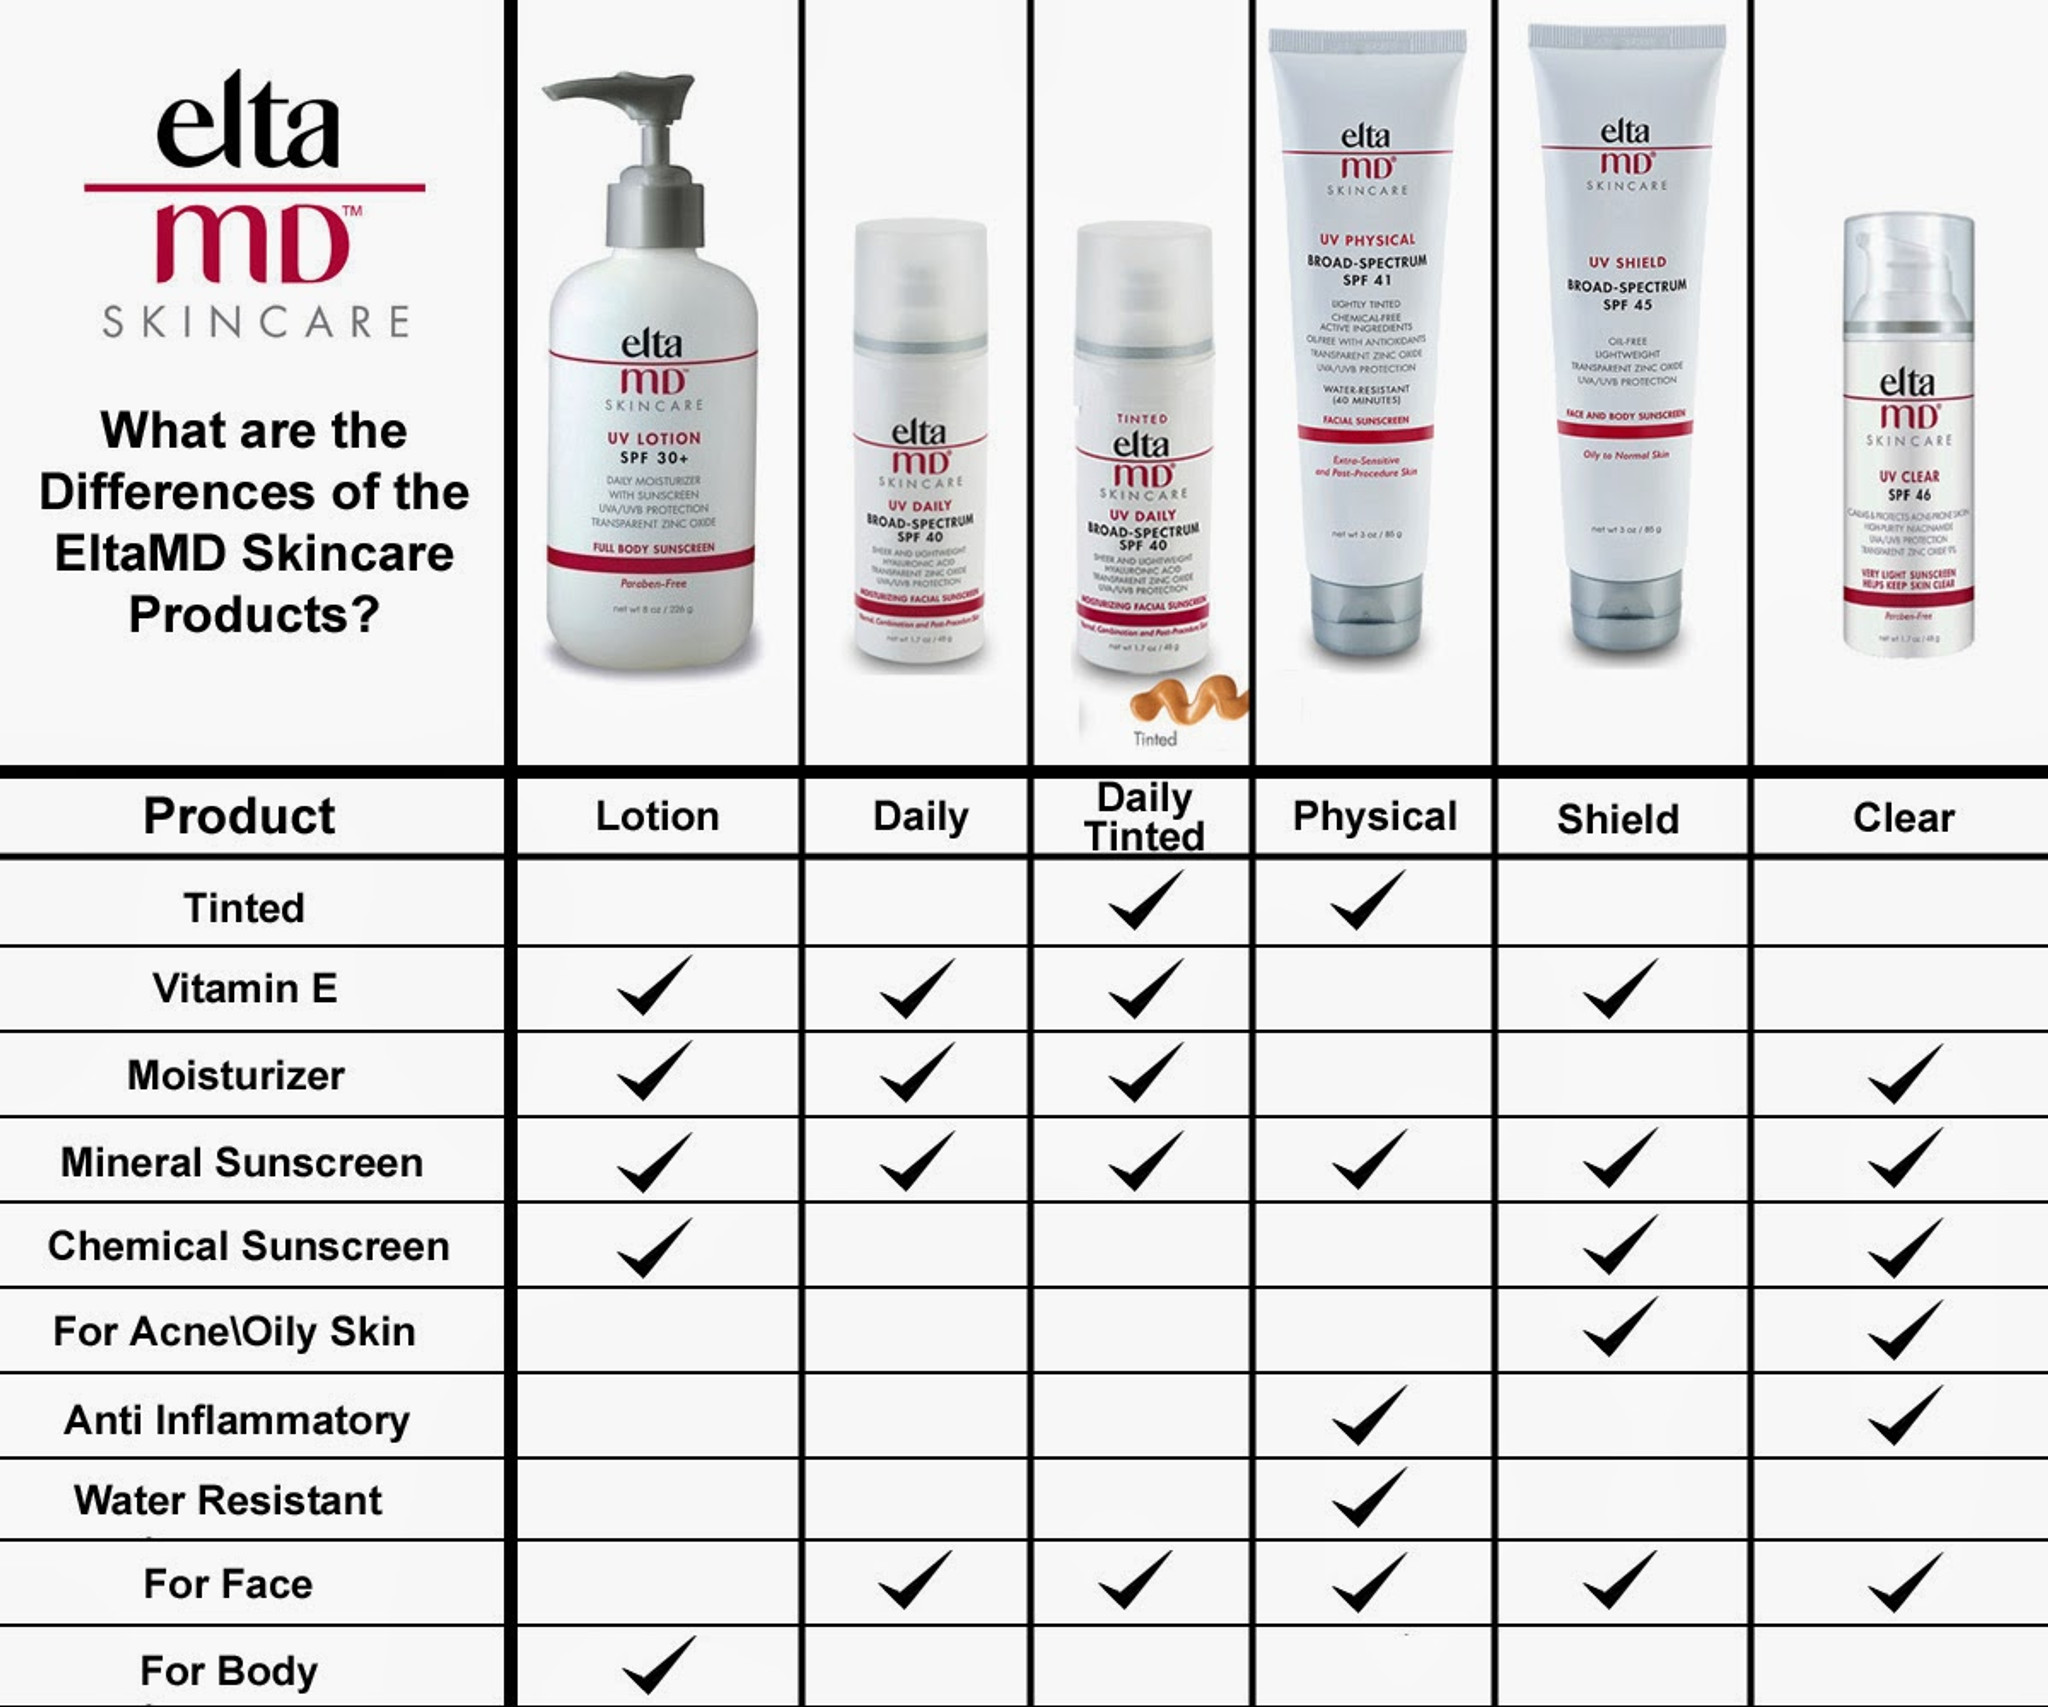 Elta md tinted sunscreen